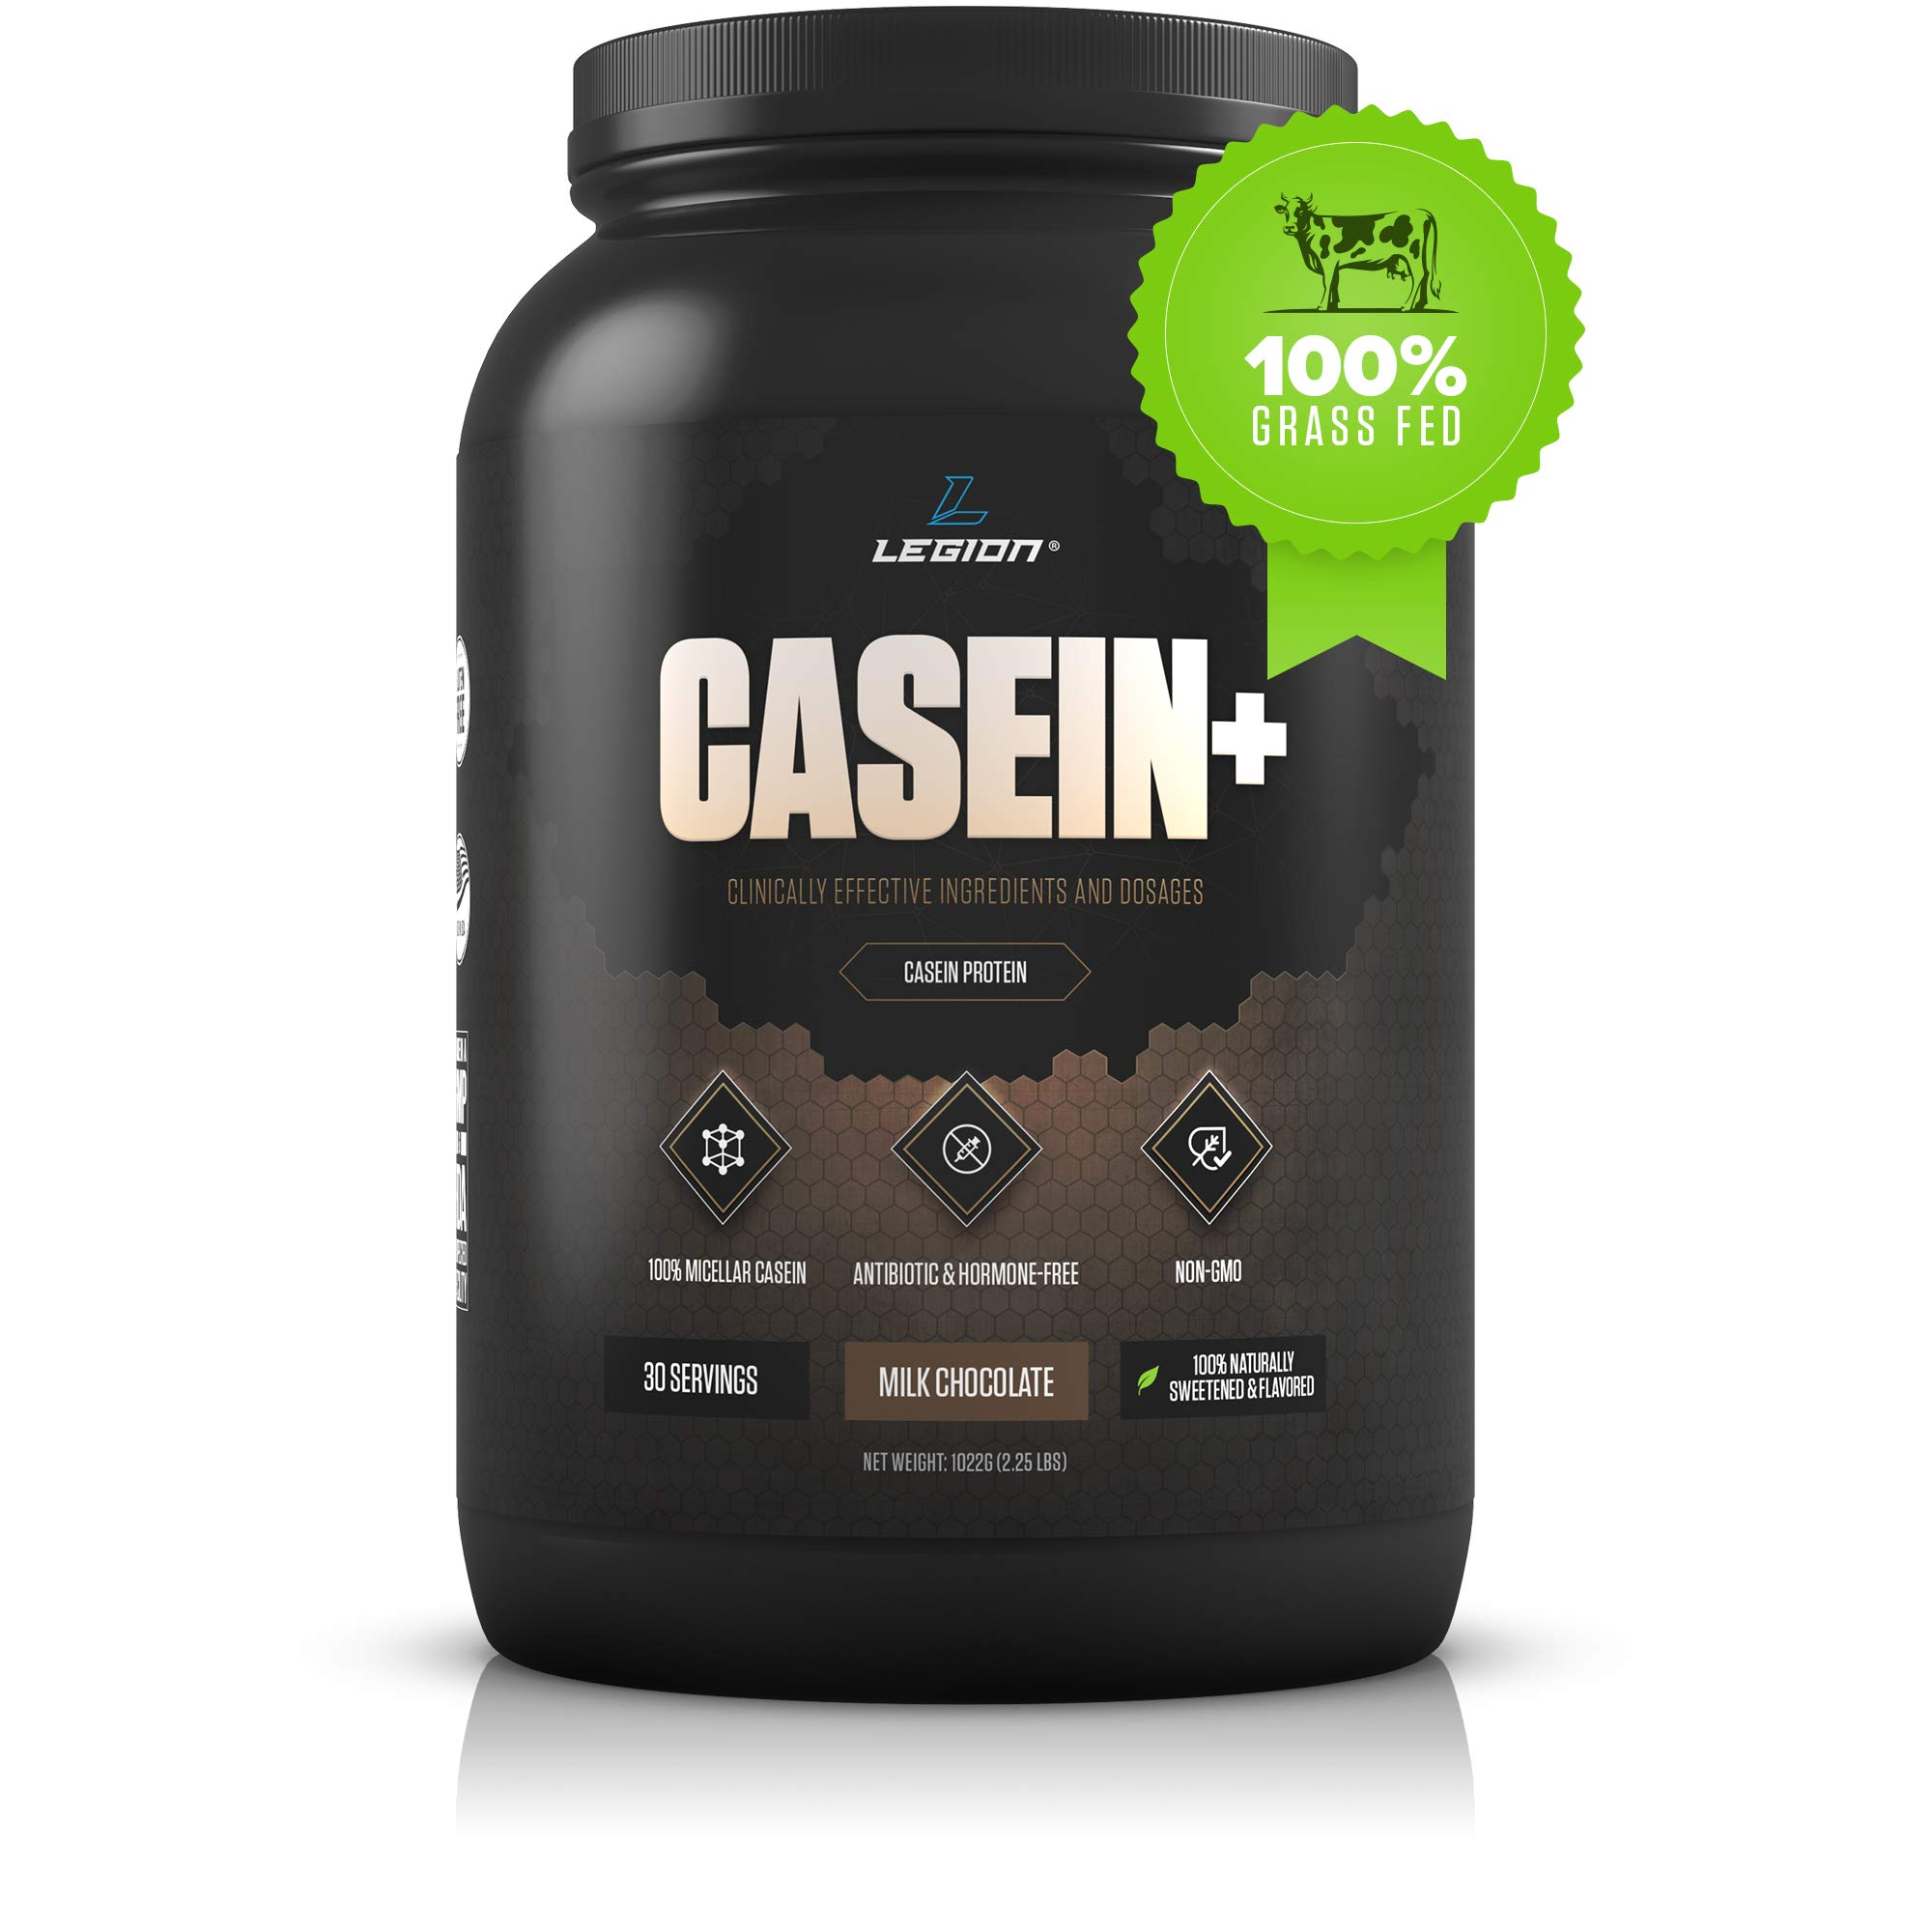 Legion Casein+ Chocolate Pure Micellar Casein Protein Powder- Non-GMO Grass Fed Cow Milk, Natural Flavors & Stevia, Low Carb, Keto Friendly - Best Pre Sleep (PM) Slow Release Muscle Recovery Drink 2lb by Legion Athletics